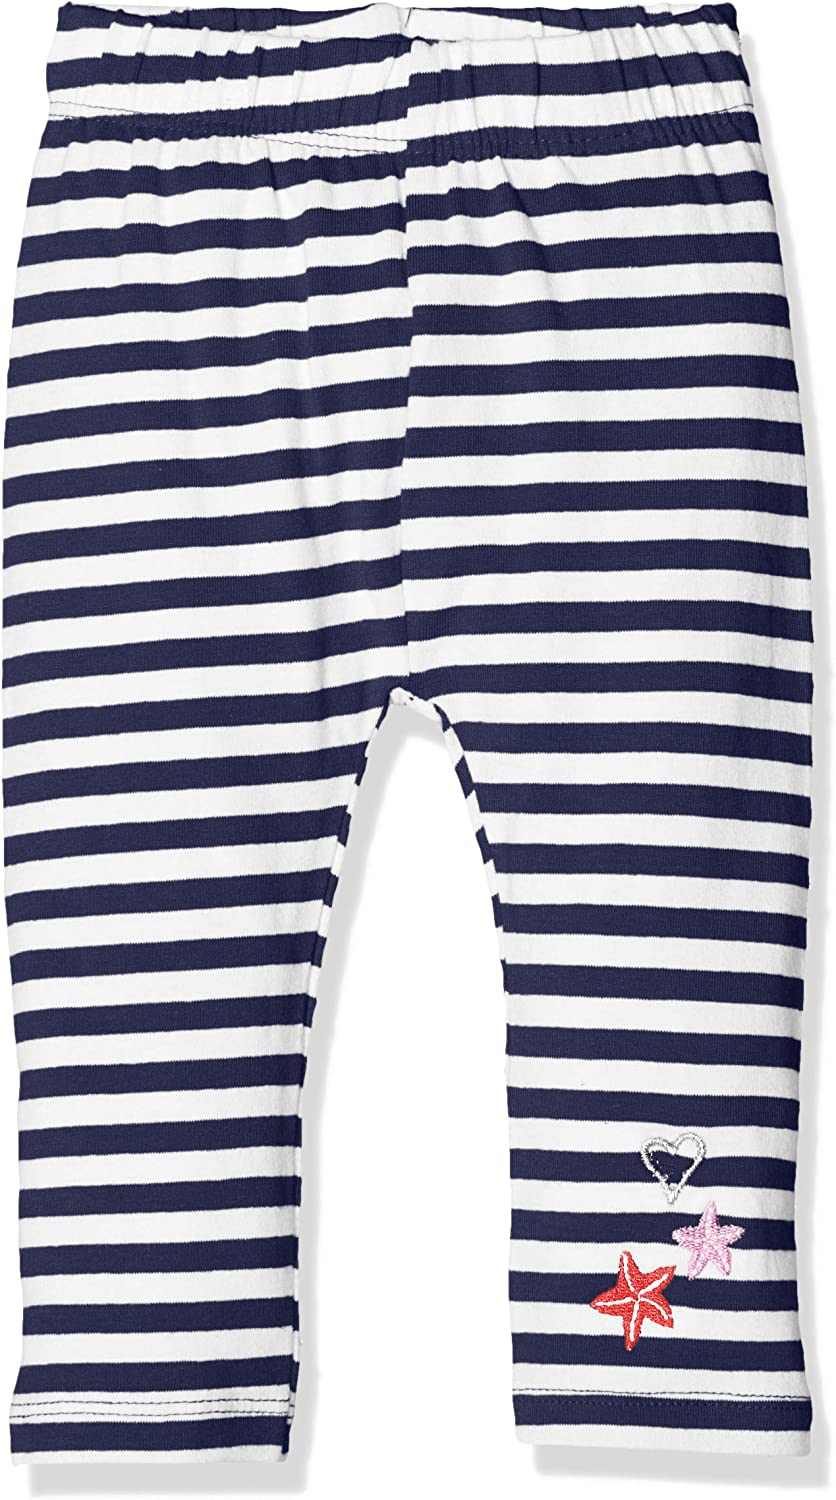 Blau Herstellergr/ö/ße: 62 Salt /& Pepper Baby-M/ädchen 03215205 Leggings Navy 498 ,